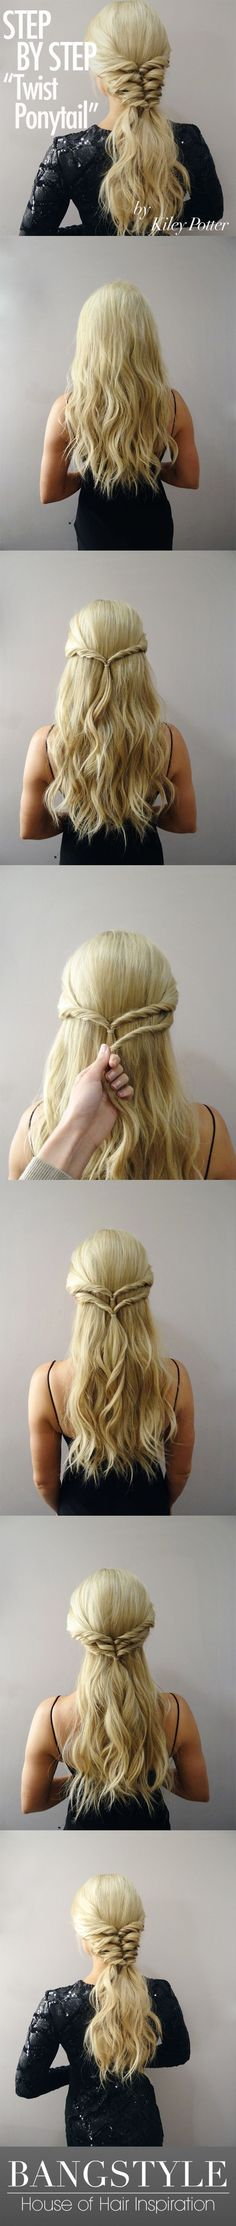 Twist Ponytail Tutorial by Kiley Potter - Bang. Twist Ponytail Tutorial by Kiley Potter – Bangstyle This gives a partial braid look, very pretty. Pretty Hairstyles, Braided Hairstyles, Latest Hairstyles, Wedding Hairstyles, Medium Hairstyles, Hairstyles Haircuts, Hairstyle Short, Popular Hairstyles, Glam Hairstyles